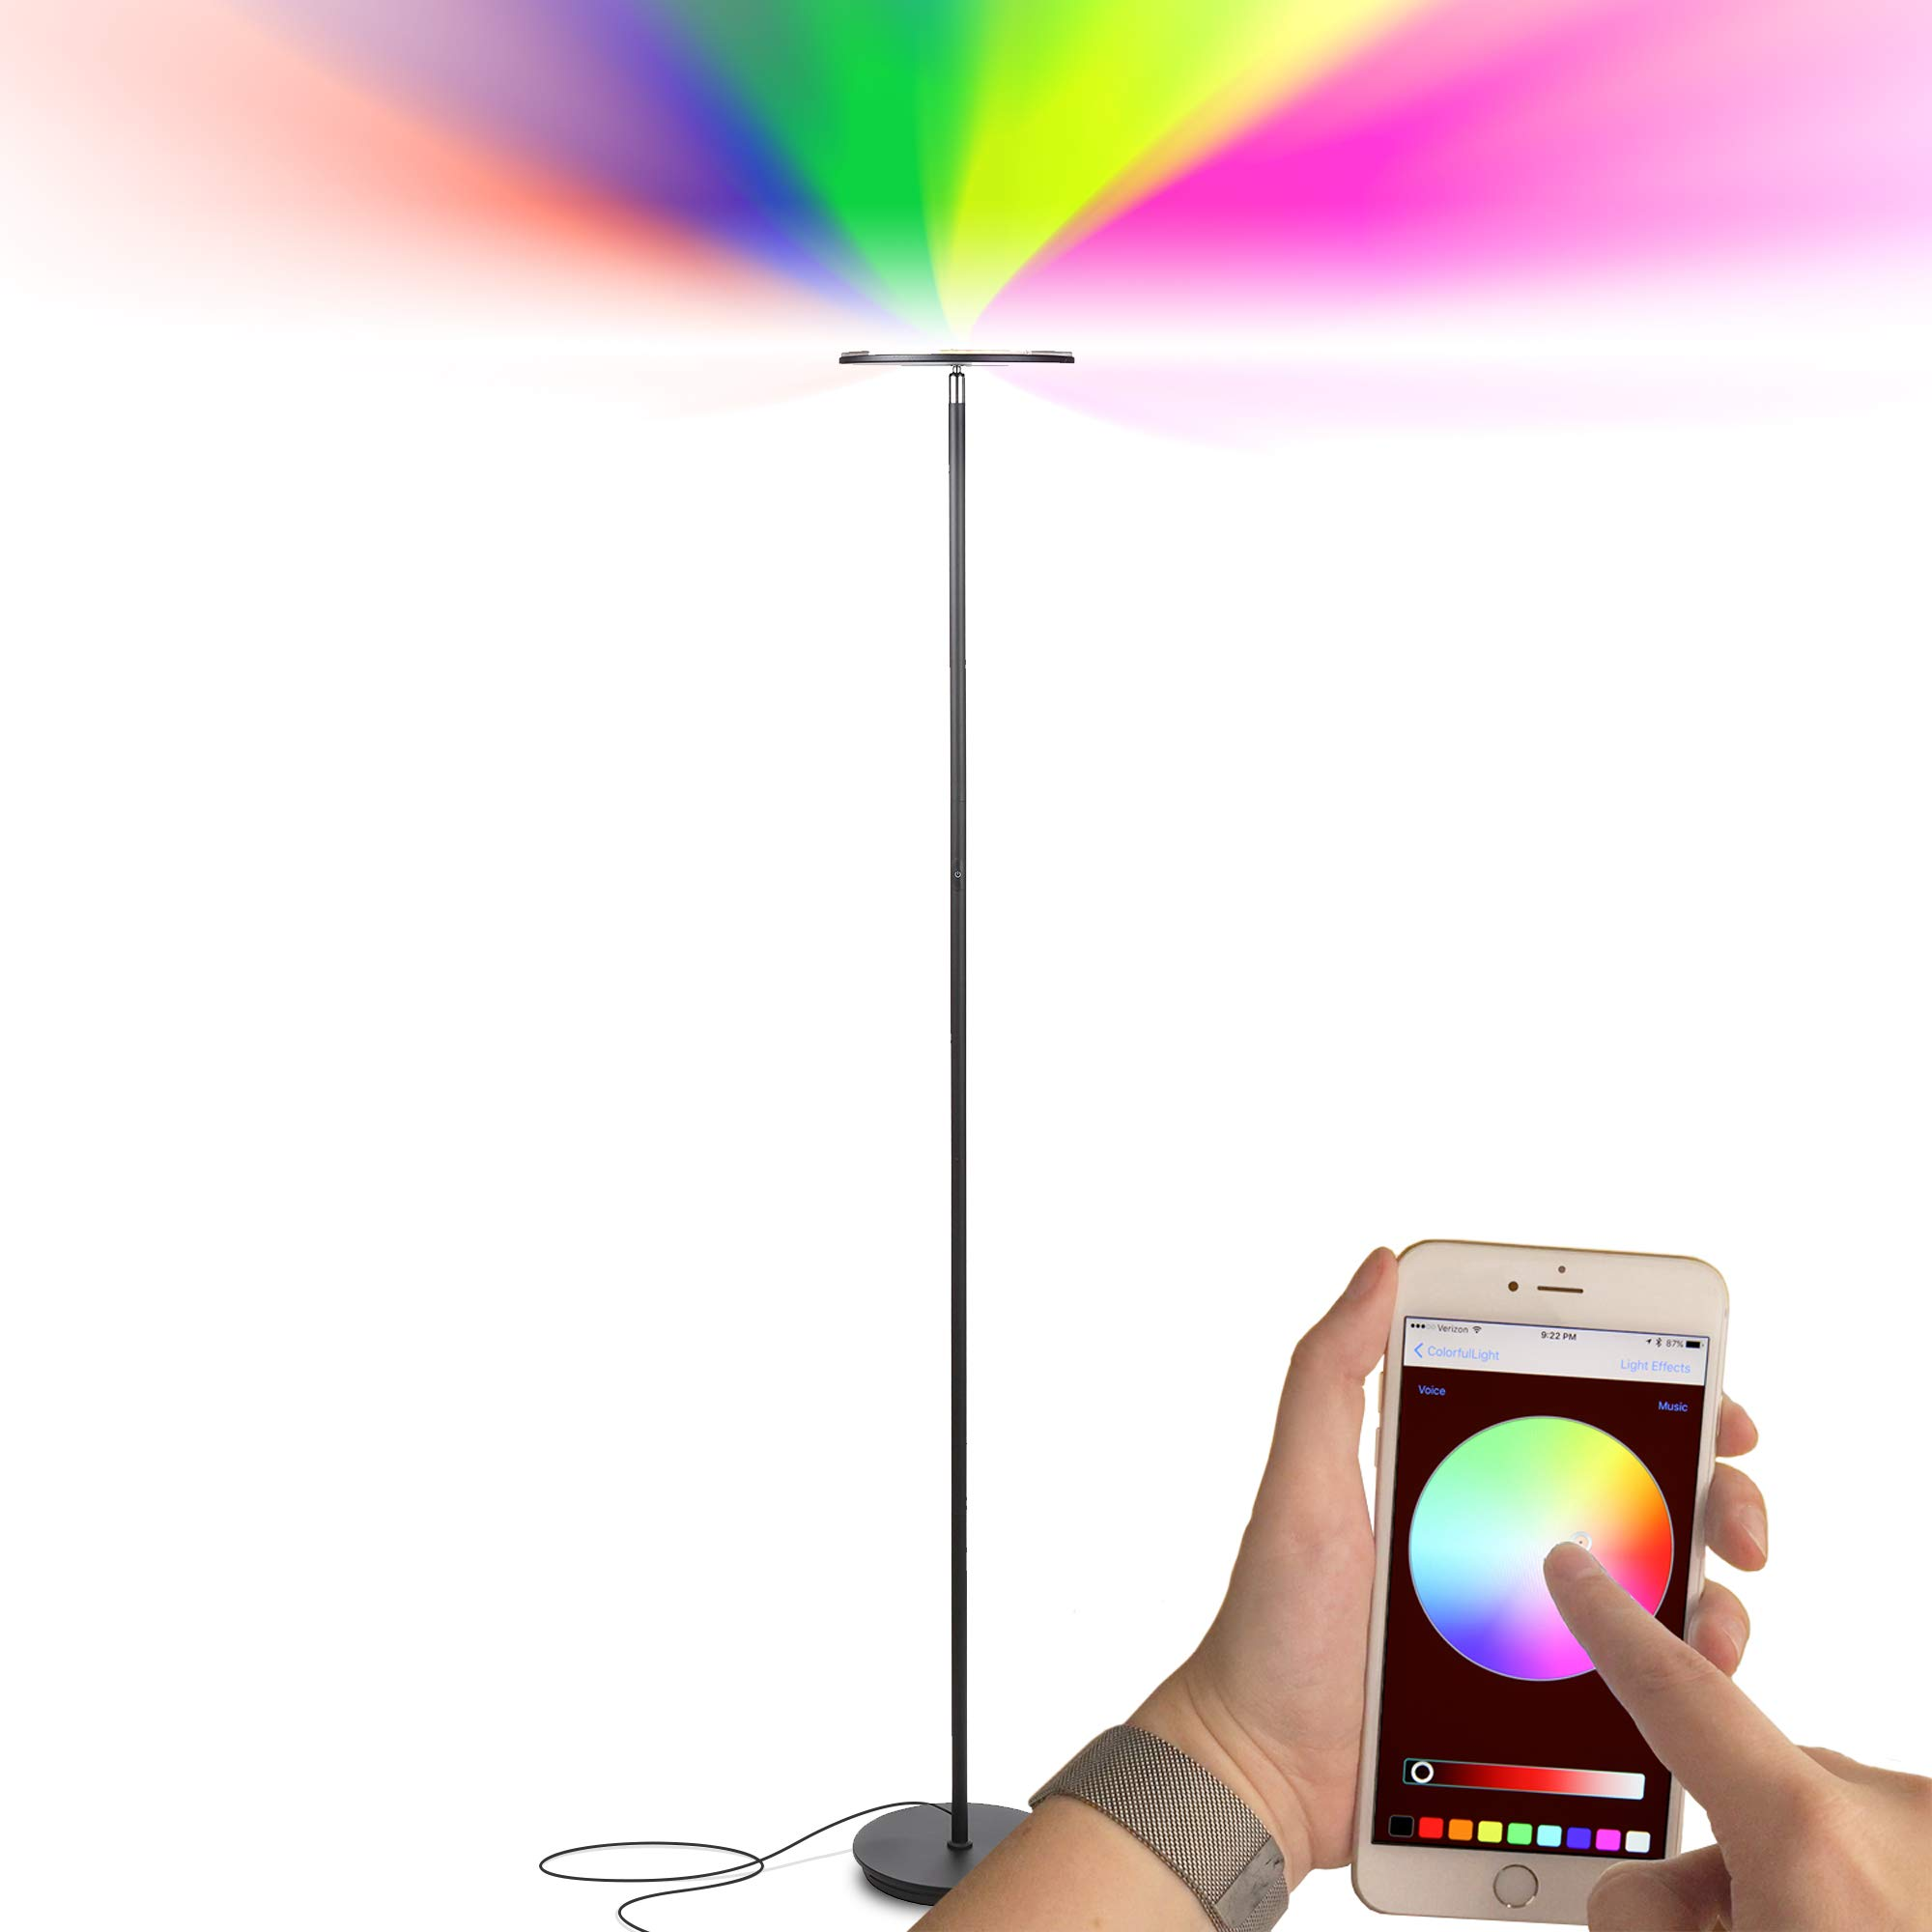 Brightech Kuler Sky - Color Changing Torchiere LED Floor Lamp - Dimmable Light - Remote Control via iOs & Android App - Lamp for Living Rooms, Game Rooms & Bedrooms - Adjustable Pivoting Head - Black by Brightech